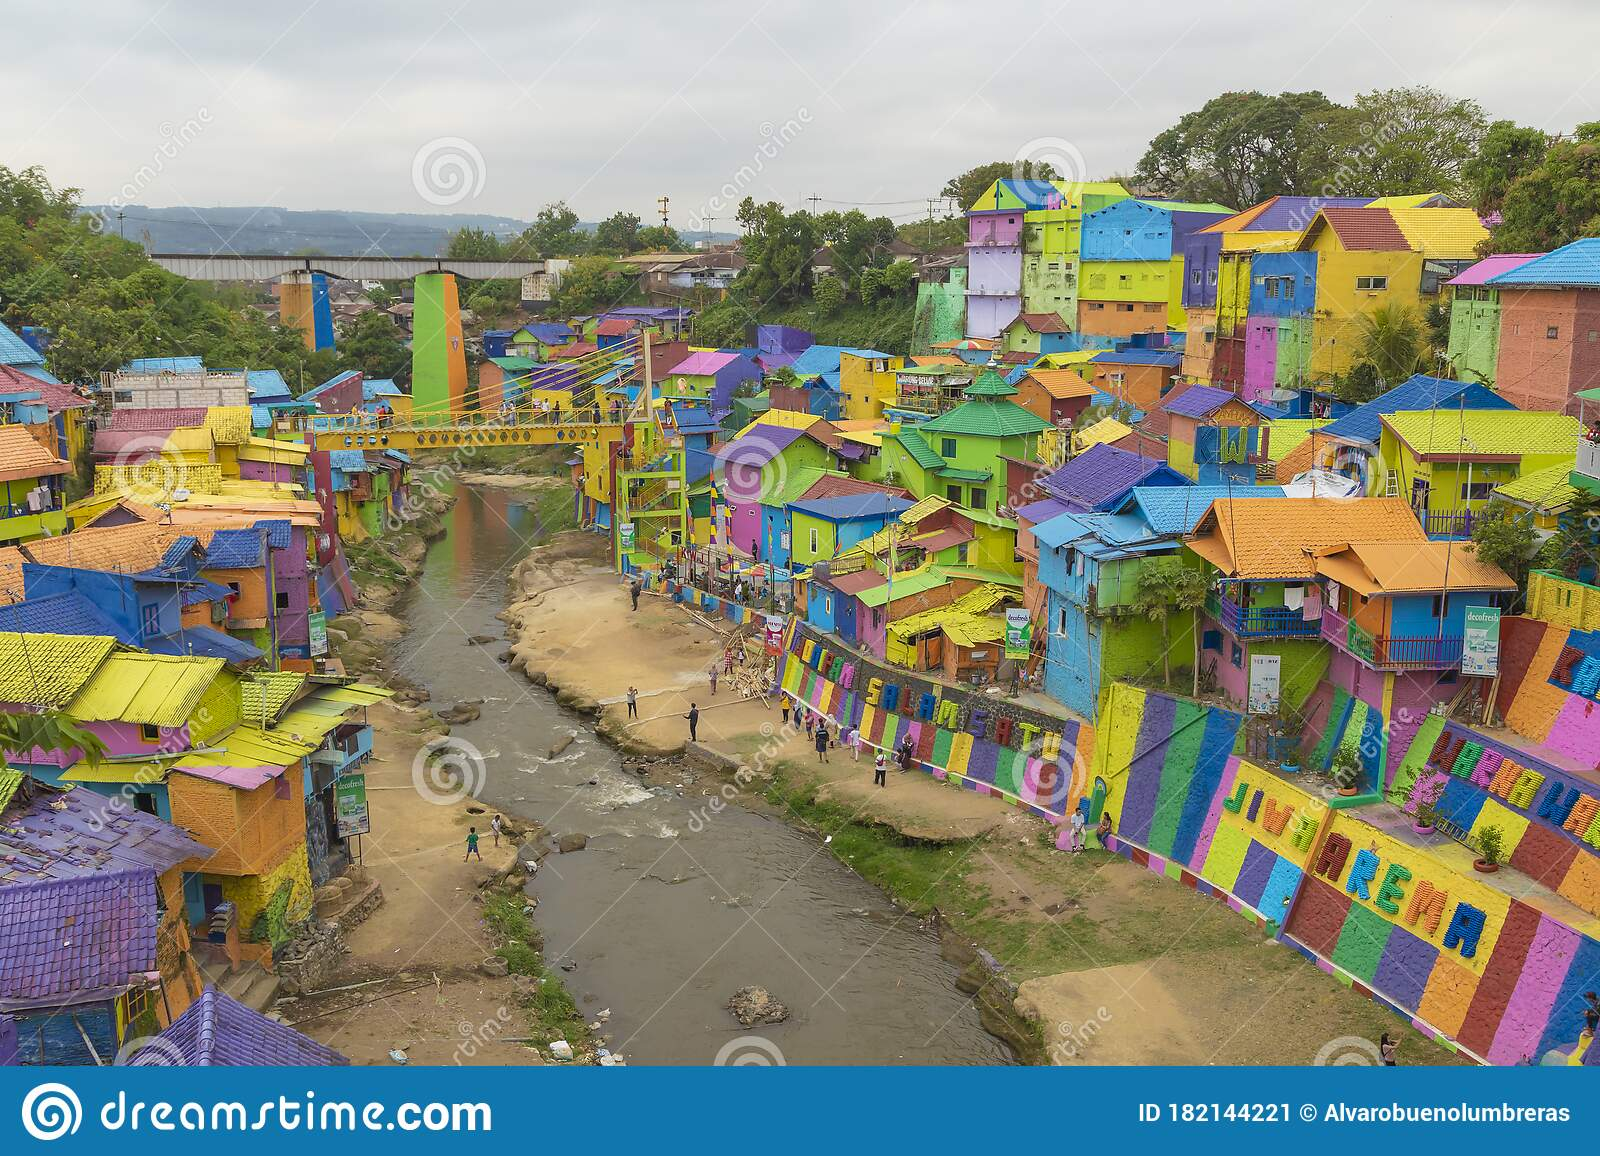 Jodipan A Small Neighborhood In Malang City Indonesia Editorial Photo Image Of Colorize District 182144221